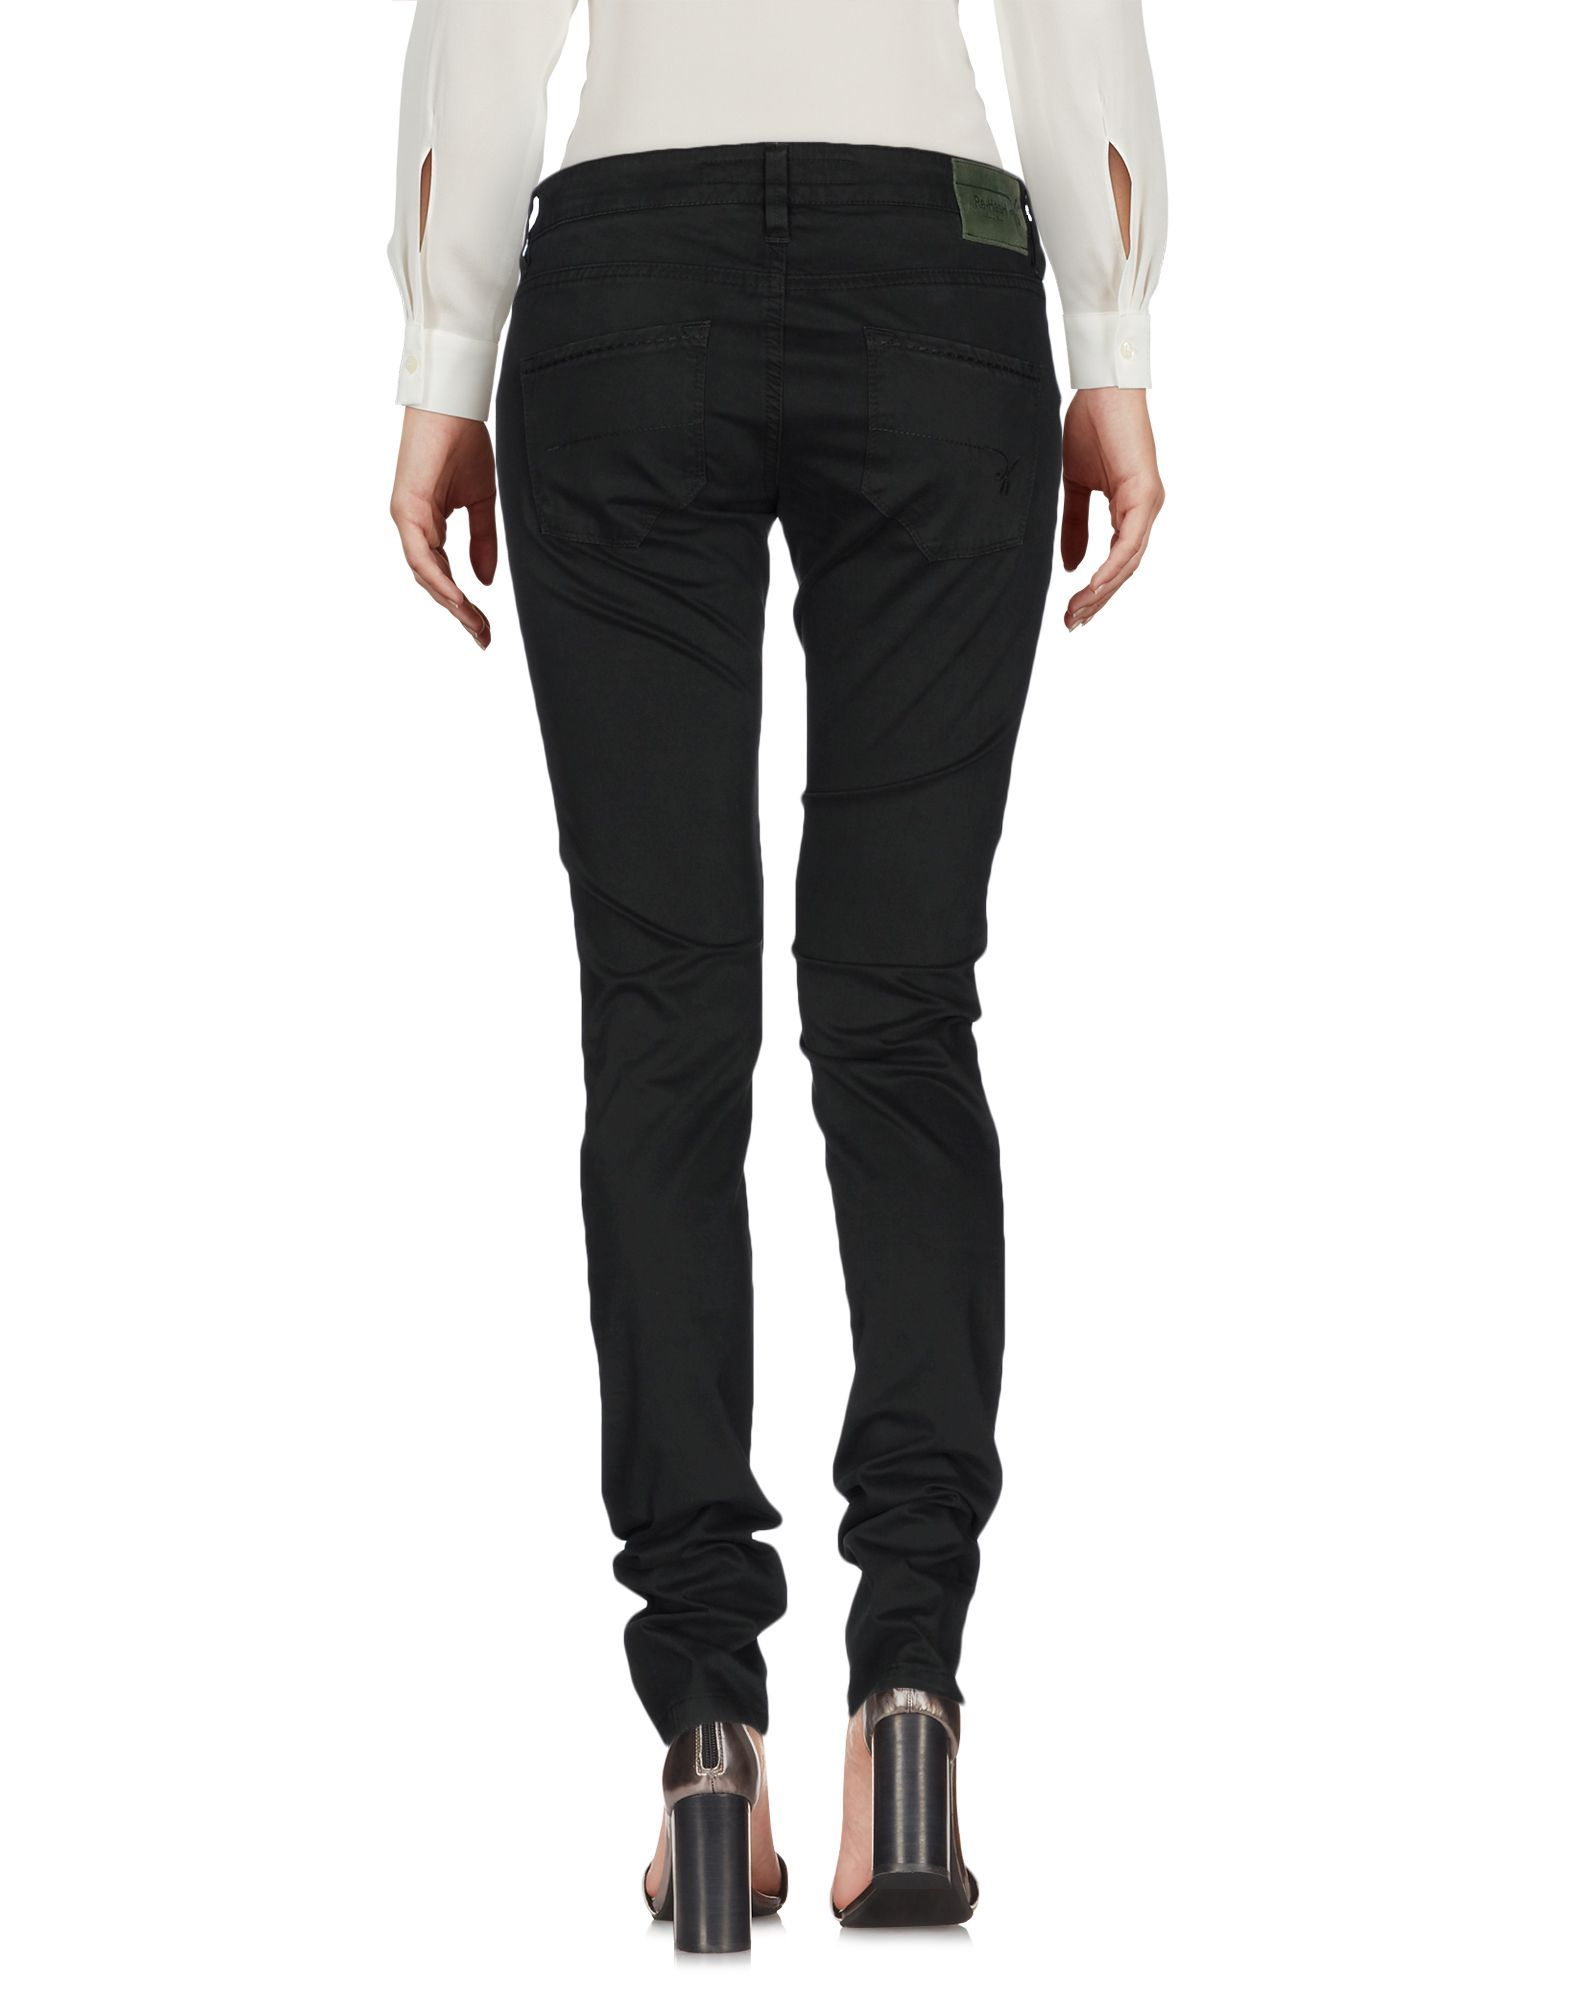 Re-Hash Dark Green Cotton Tapered Leg Trousers